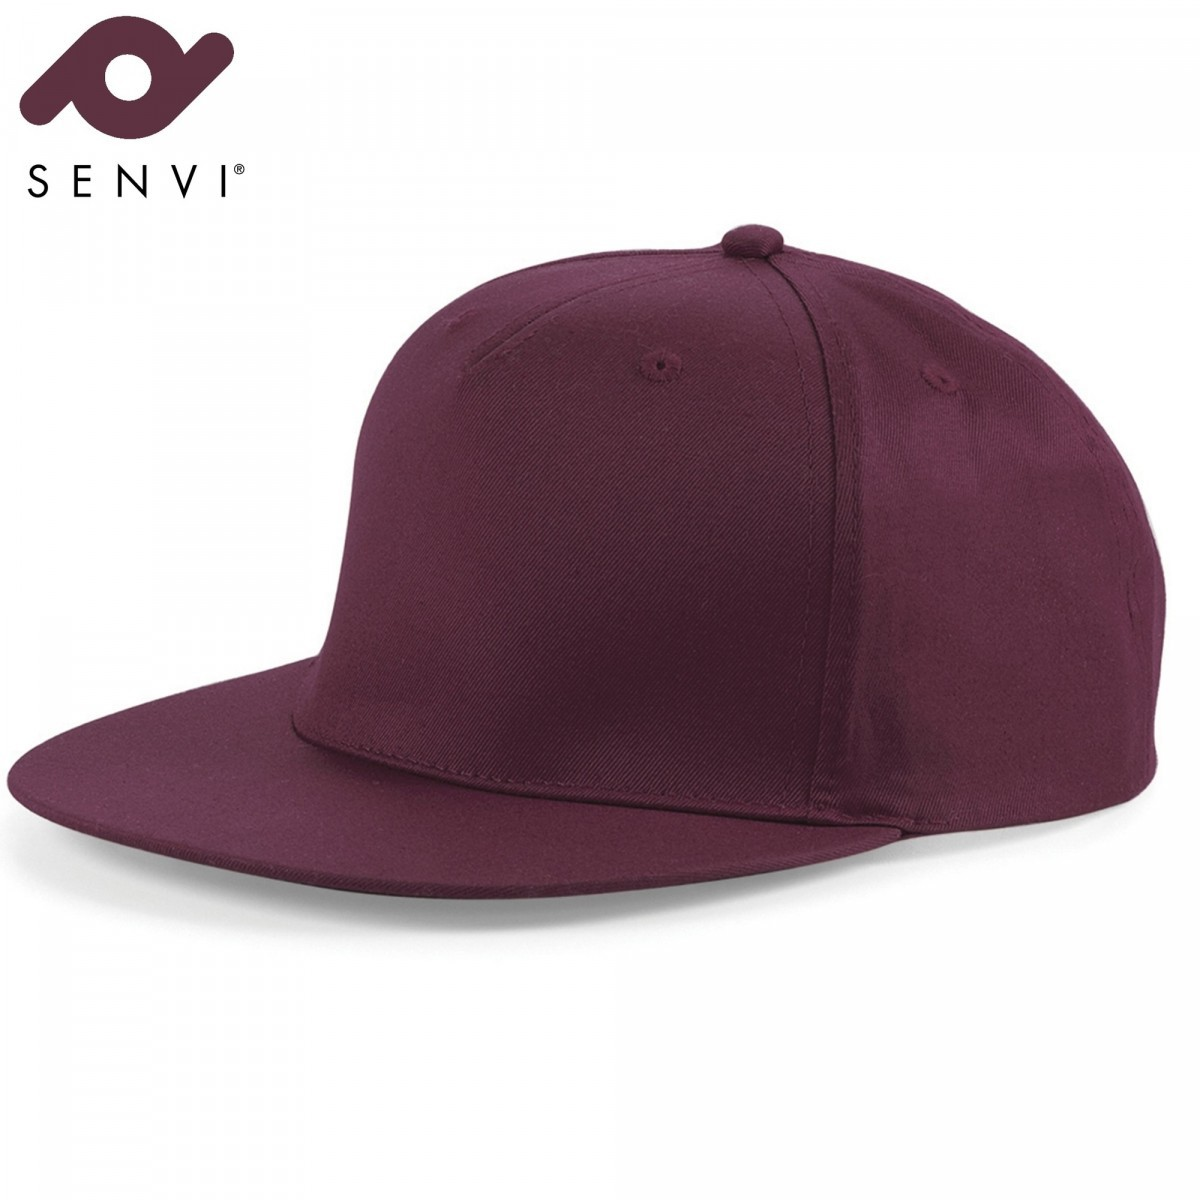 Senvi Snapback Rapper Cap Bordeaux (One size fits all)